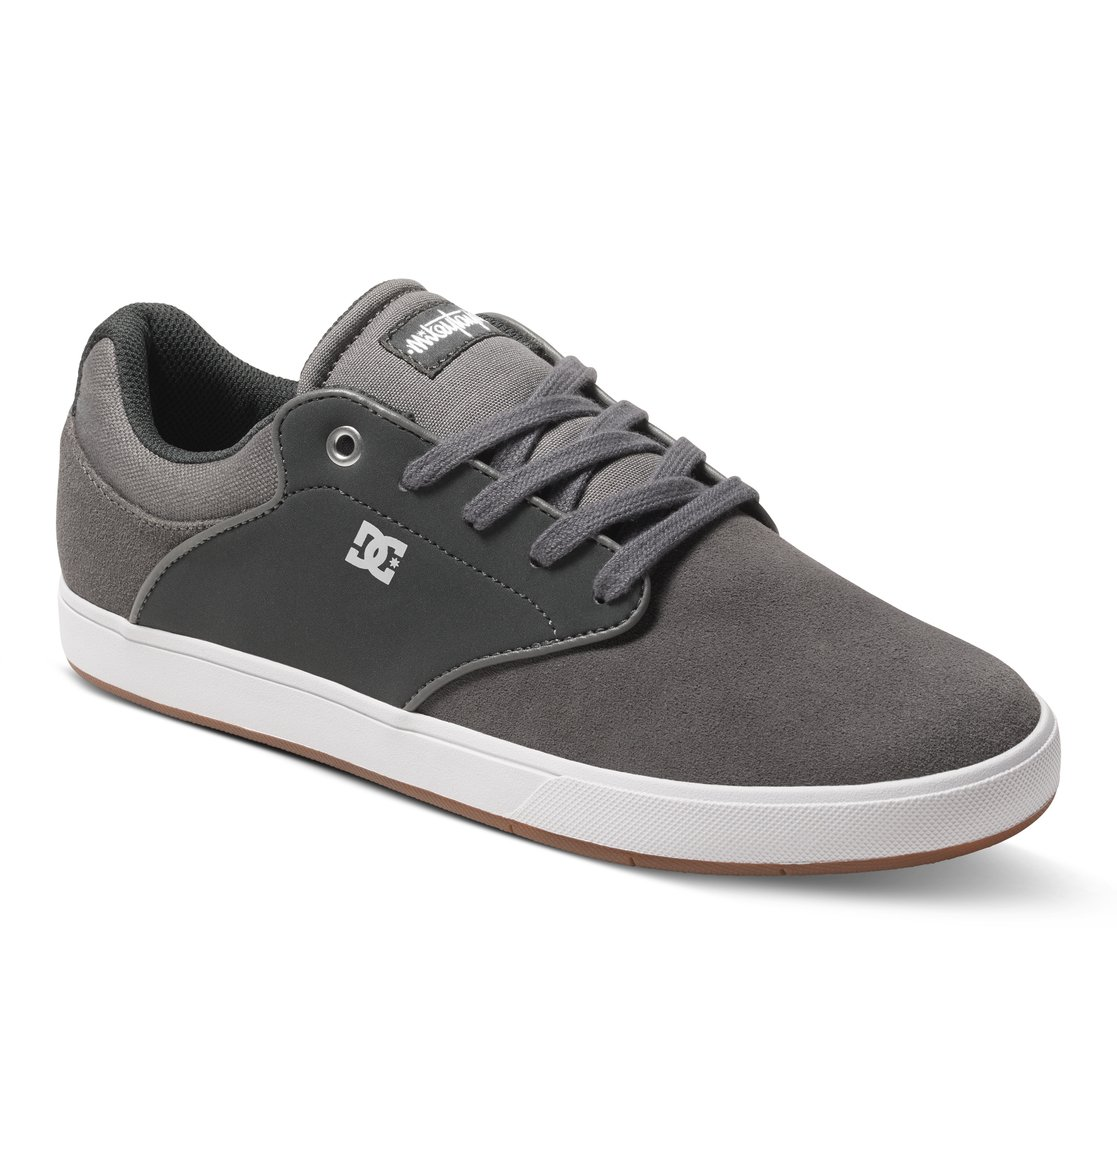 mikey taylor shoes adys100303 dc shoes. Black Bedroom Furniture Sets. Home Design Ideas